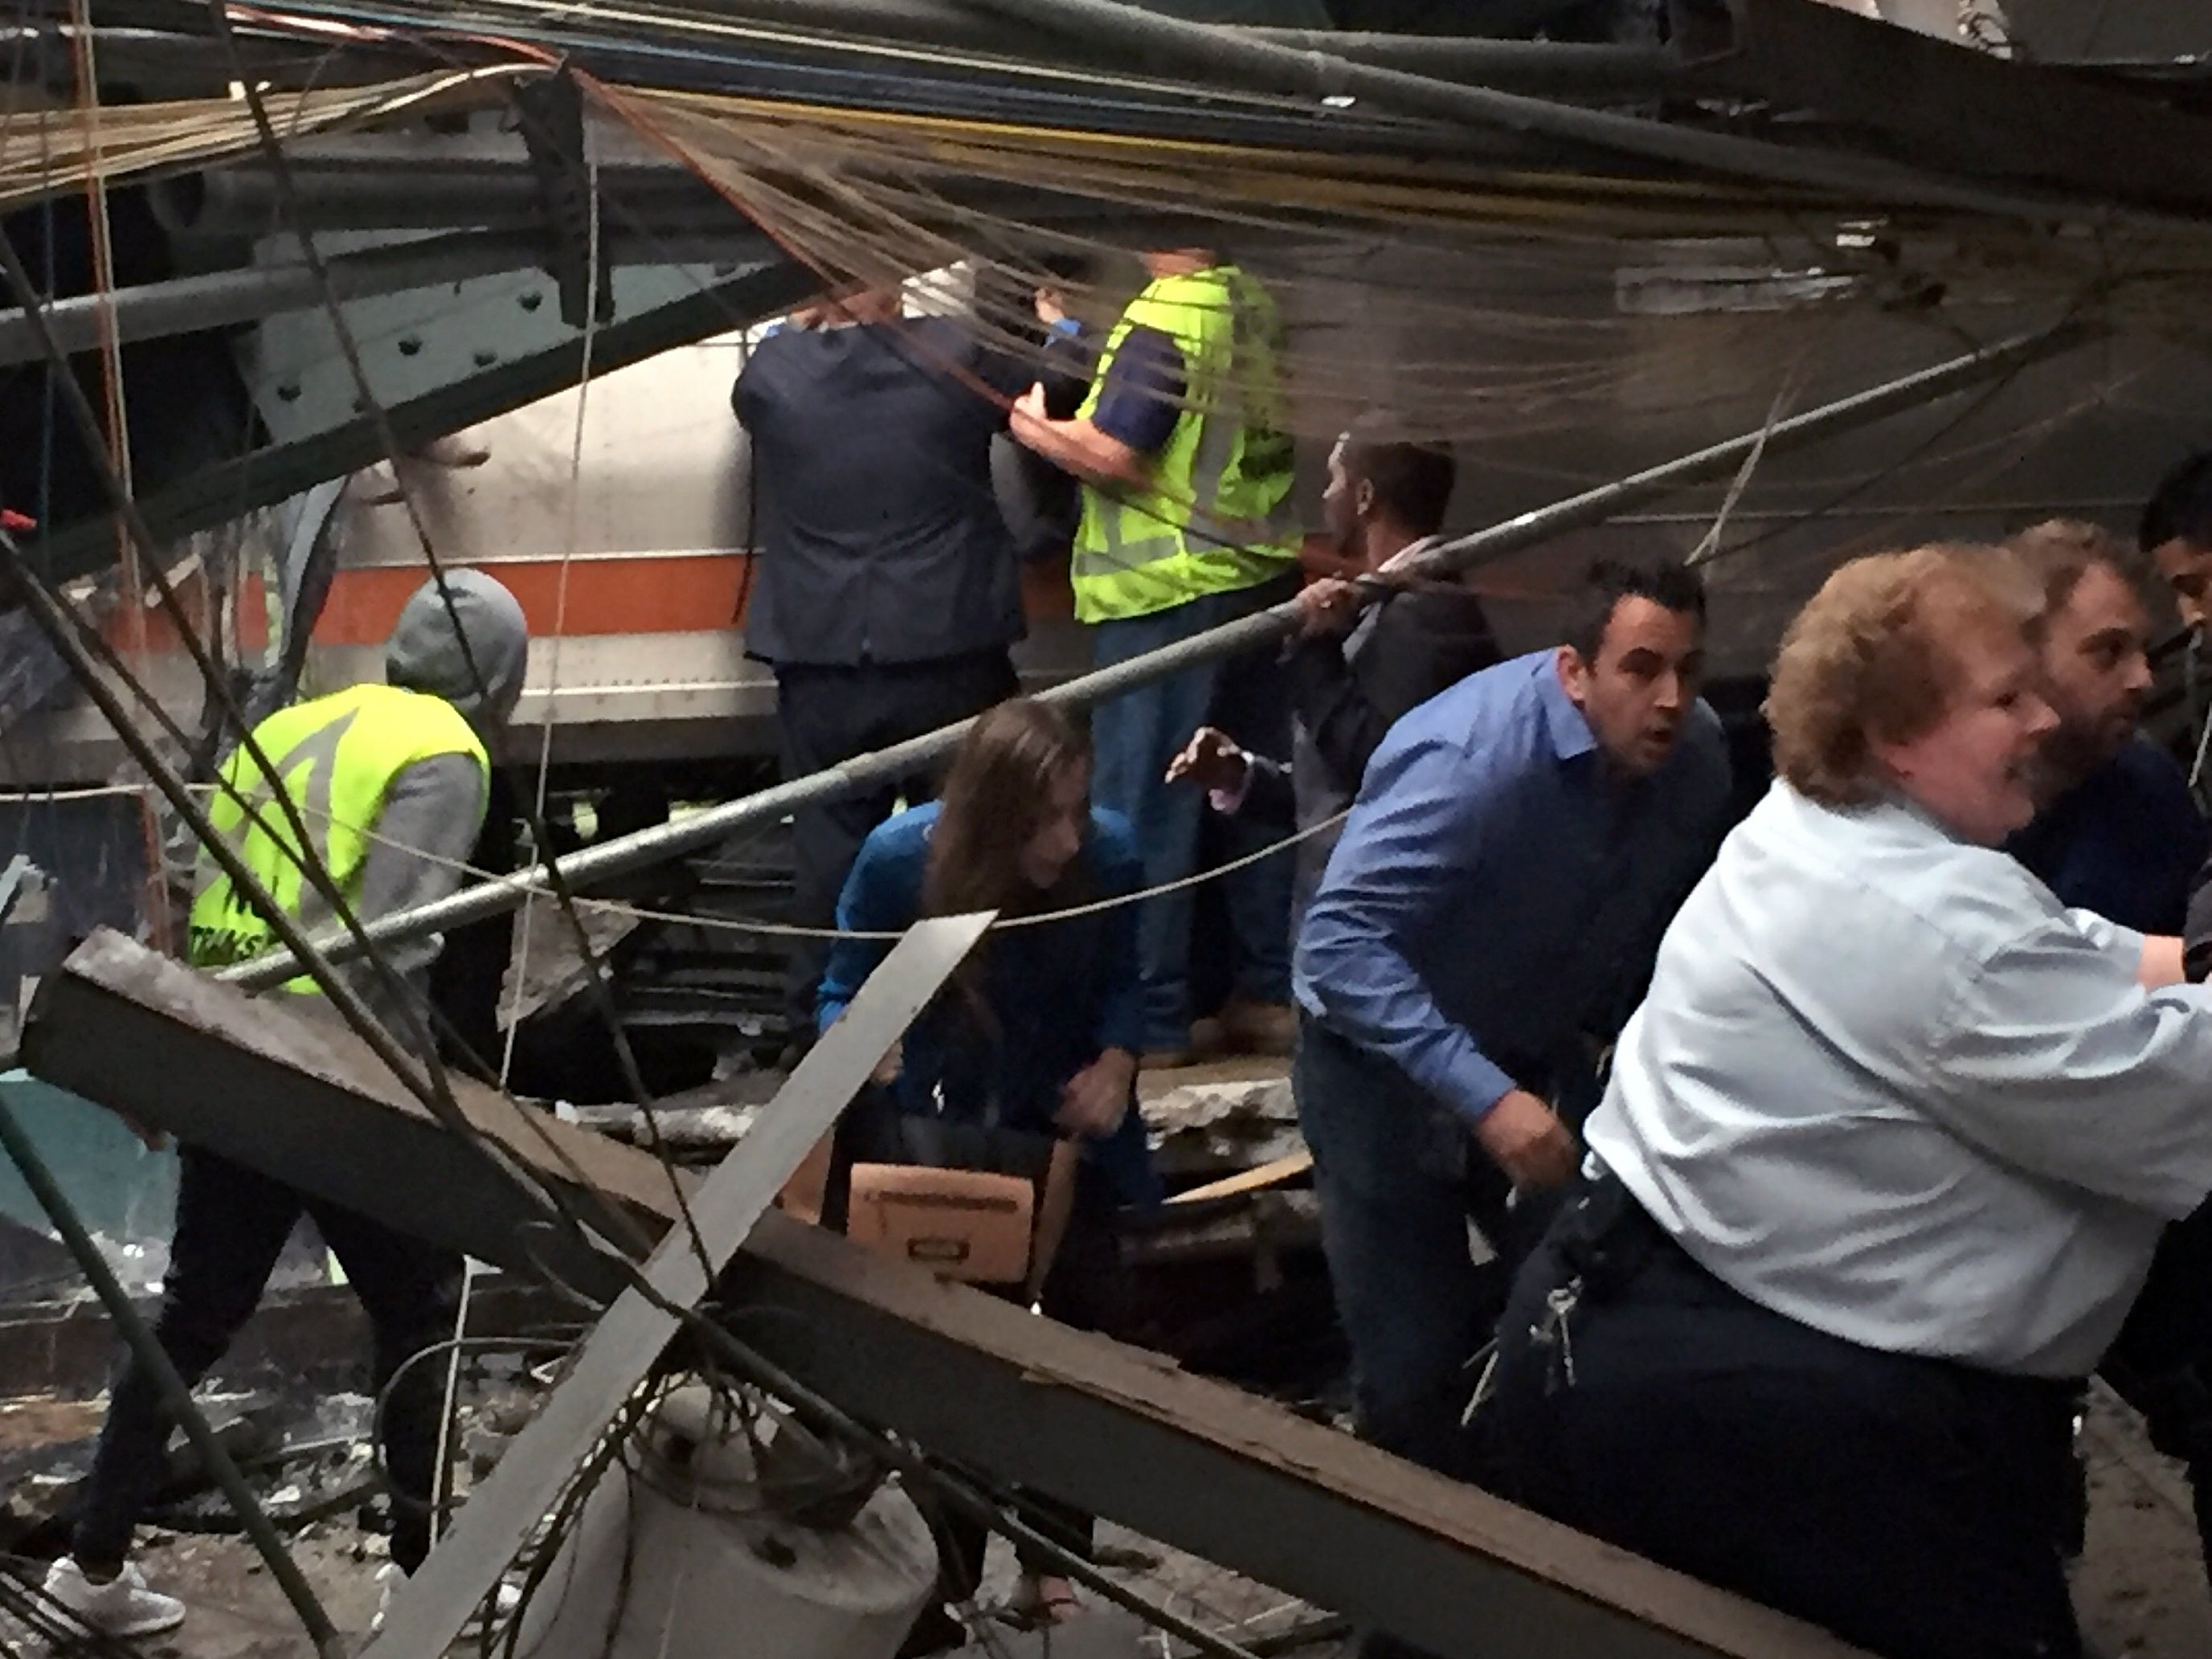 Train Crashes Into New Jersey Station, 1 Dead, Dozens Injured